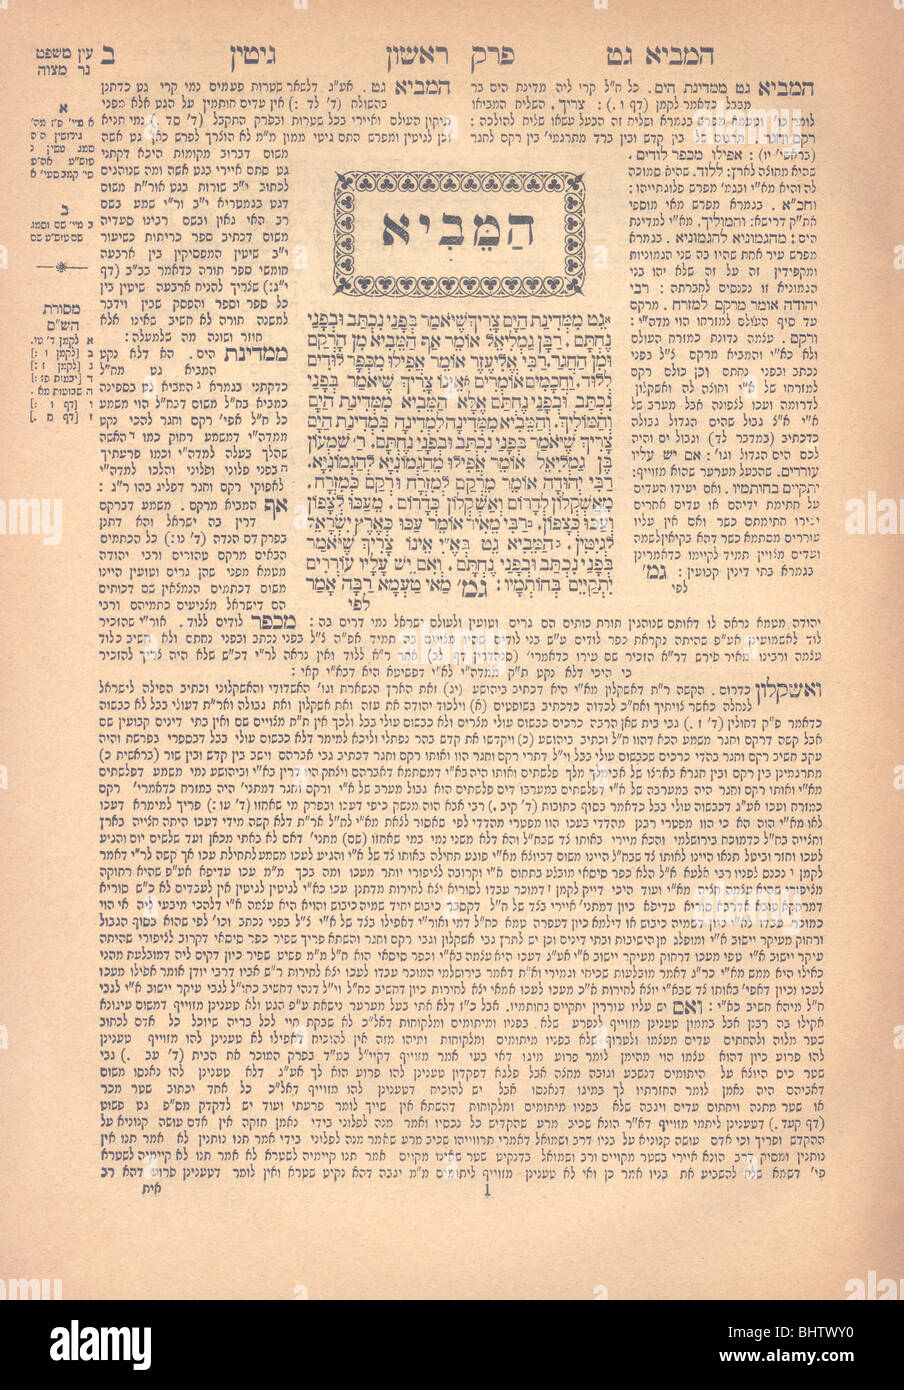 Inside cover page of Talmud / Gittin  which deals with the concepts of divorces (c. 1906, 3/3) - Stock Image